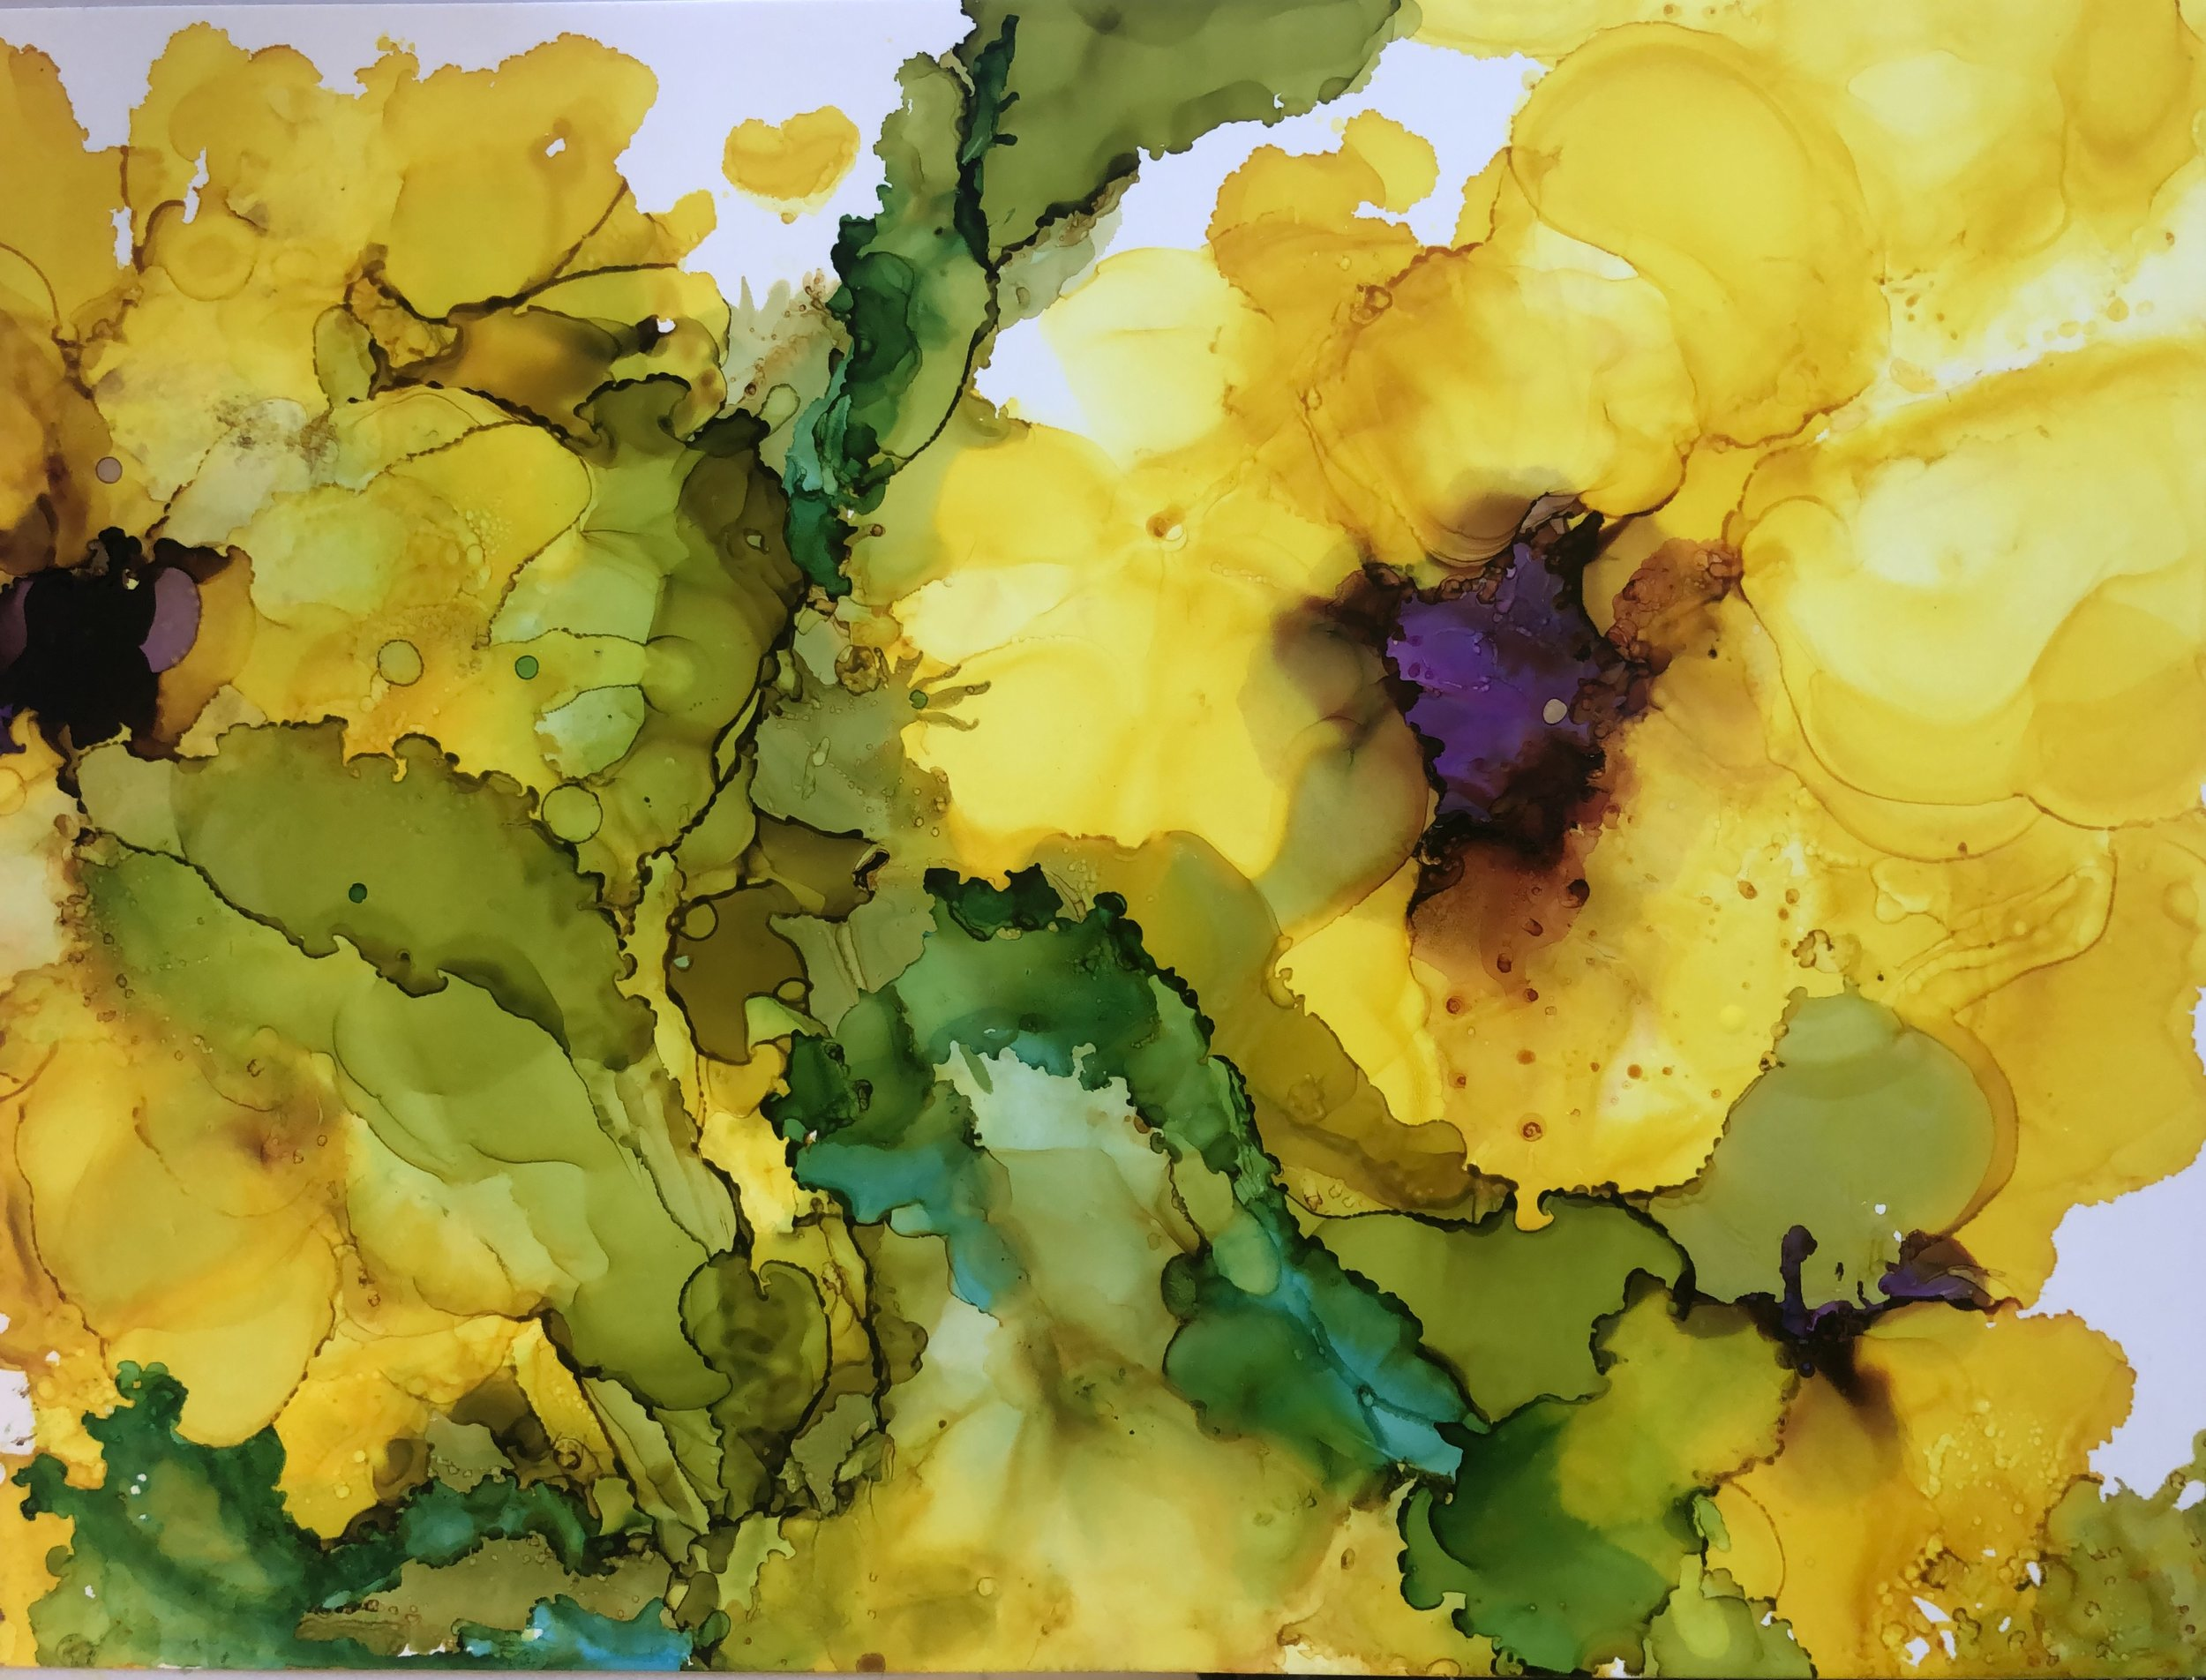 """Golden Flowers, alcohol ink on yupo paper, 9""""x12"""" SOLD"""